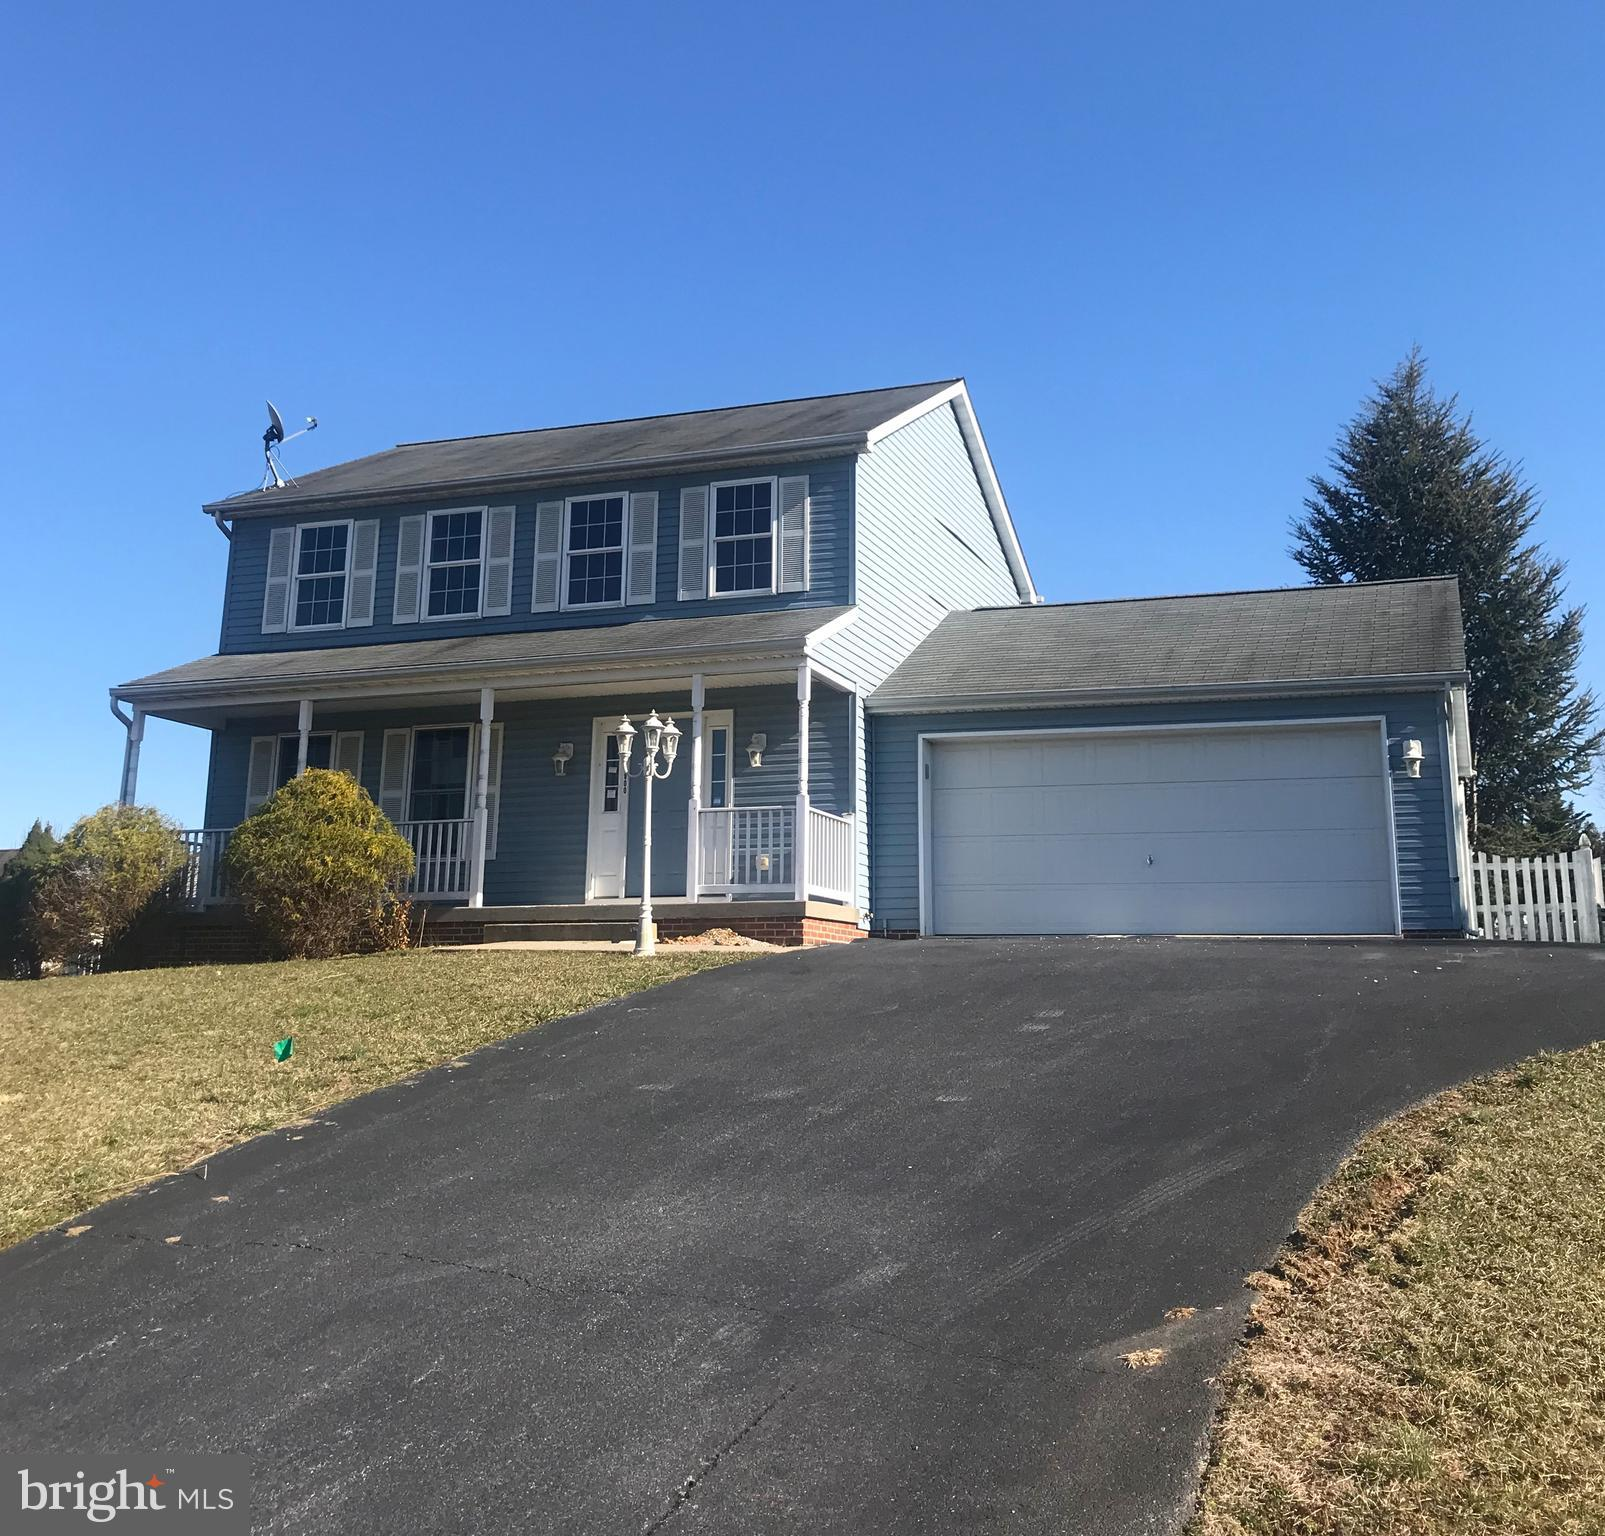 11800 WHITE PINE DRIVE, HAGERSTOWN, MD 21740